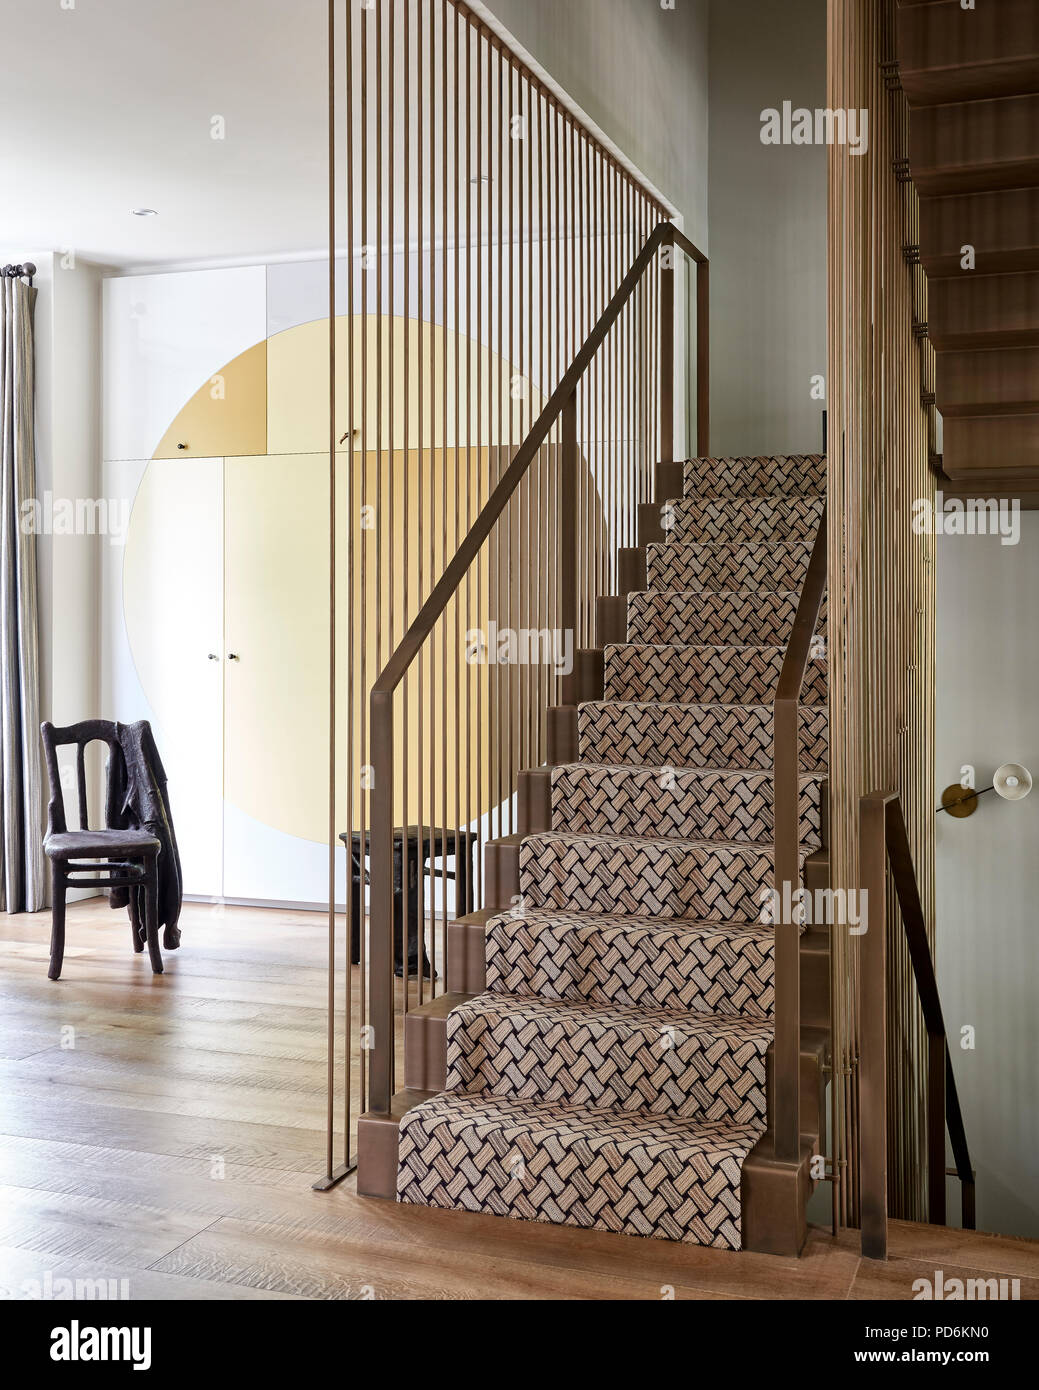 Latticed carpet with metallic handrail and banisters and concealed storage - Stock Image